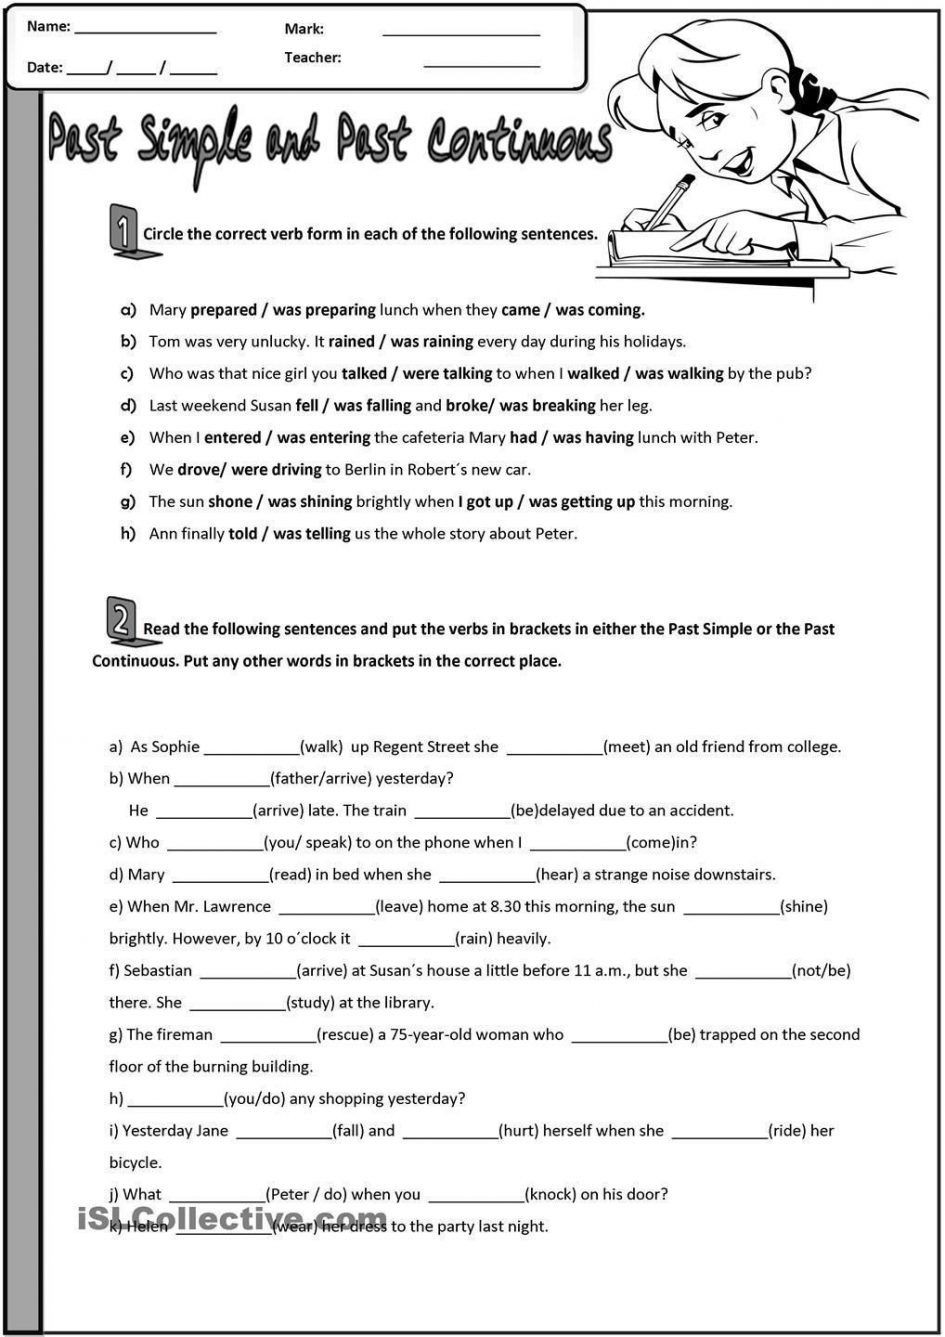 Free Grammar Worksheets High School Excel Fun Grammar Worksheets for High School Kids